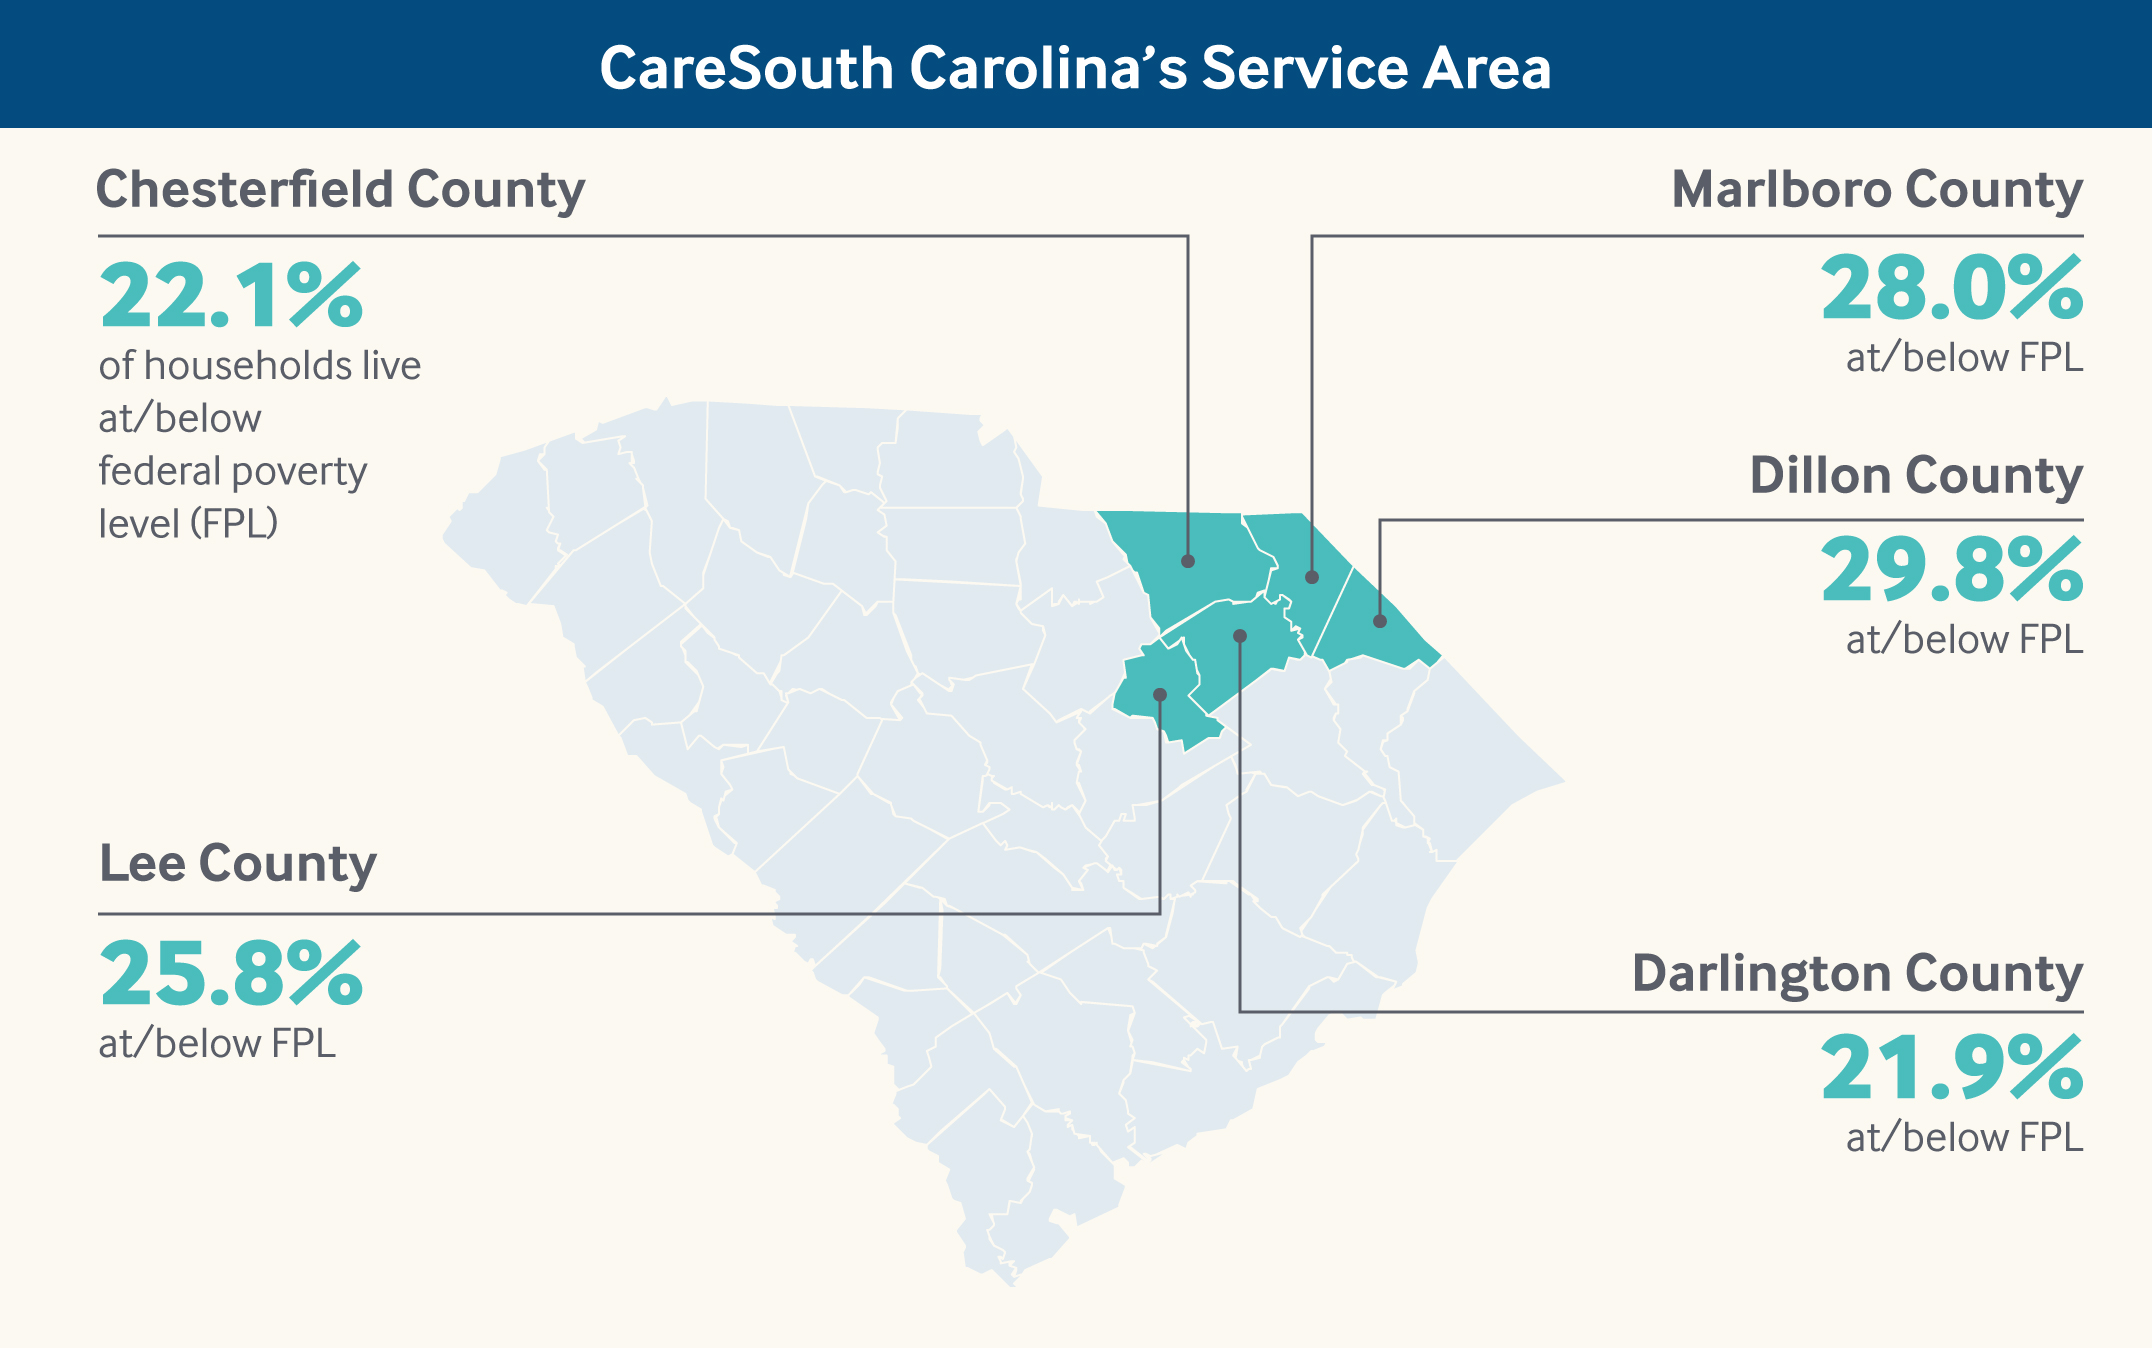 CareSouth Carolina's Service Area